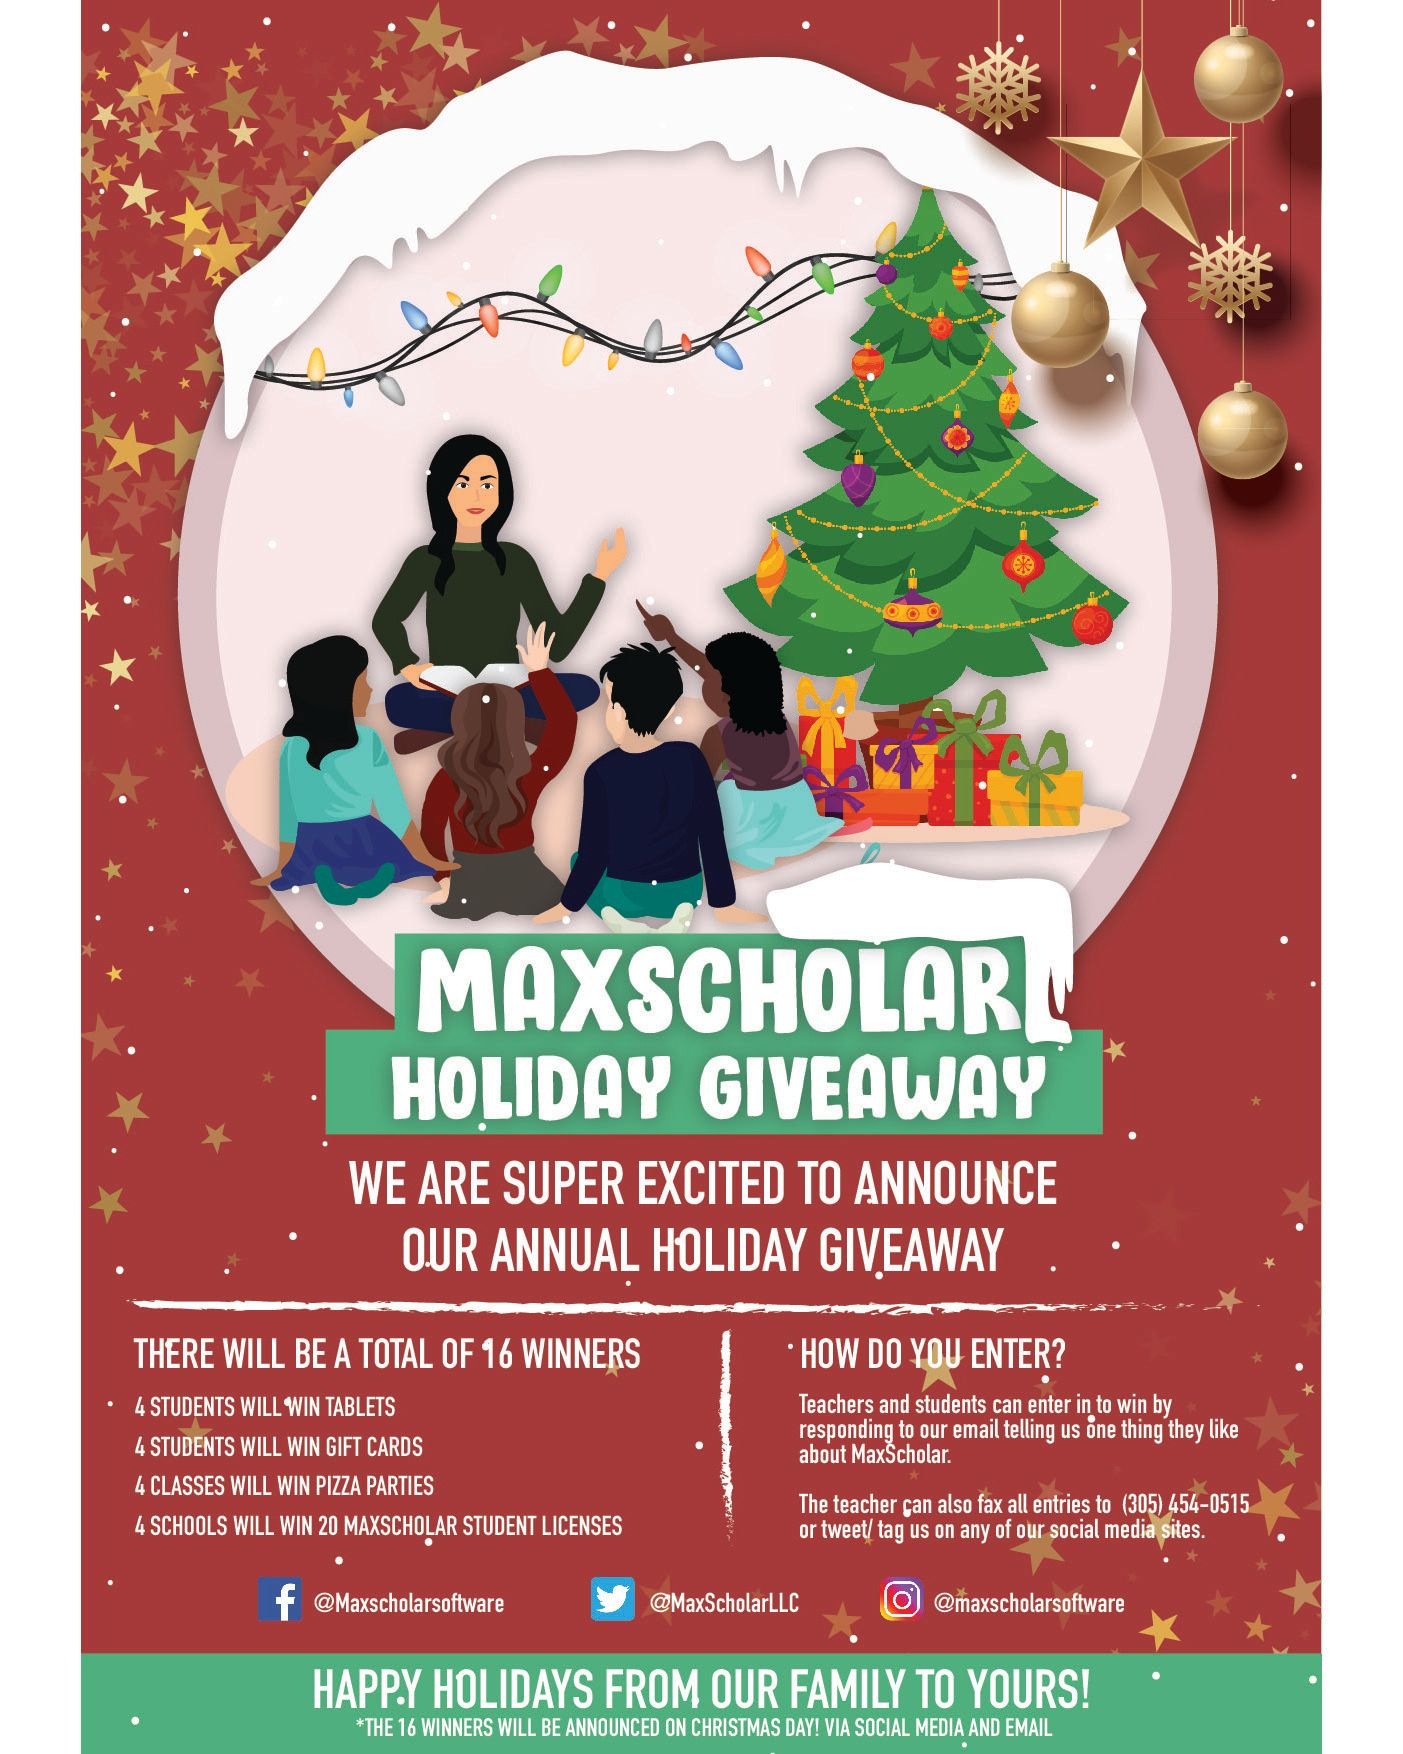 Maxscholar holiday giveaway there will be a total of 16